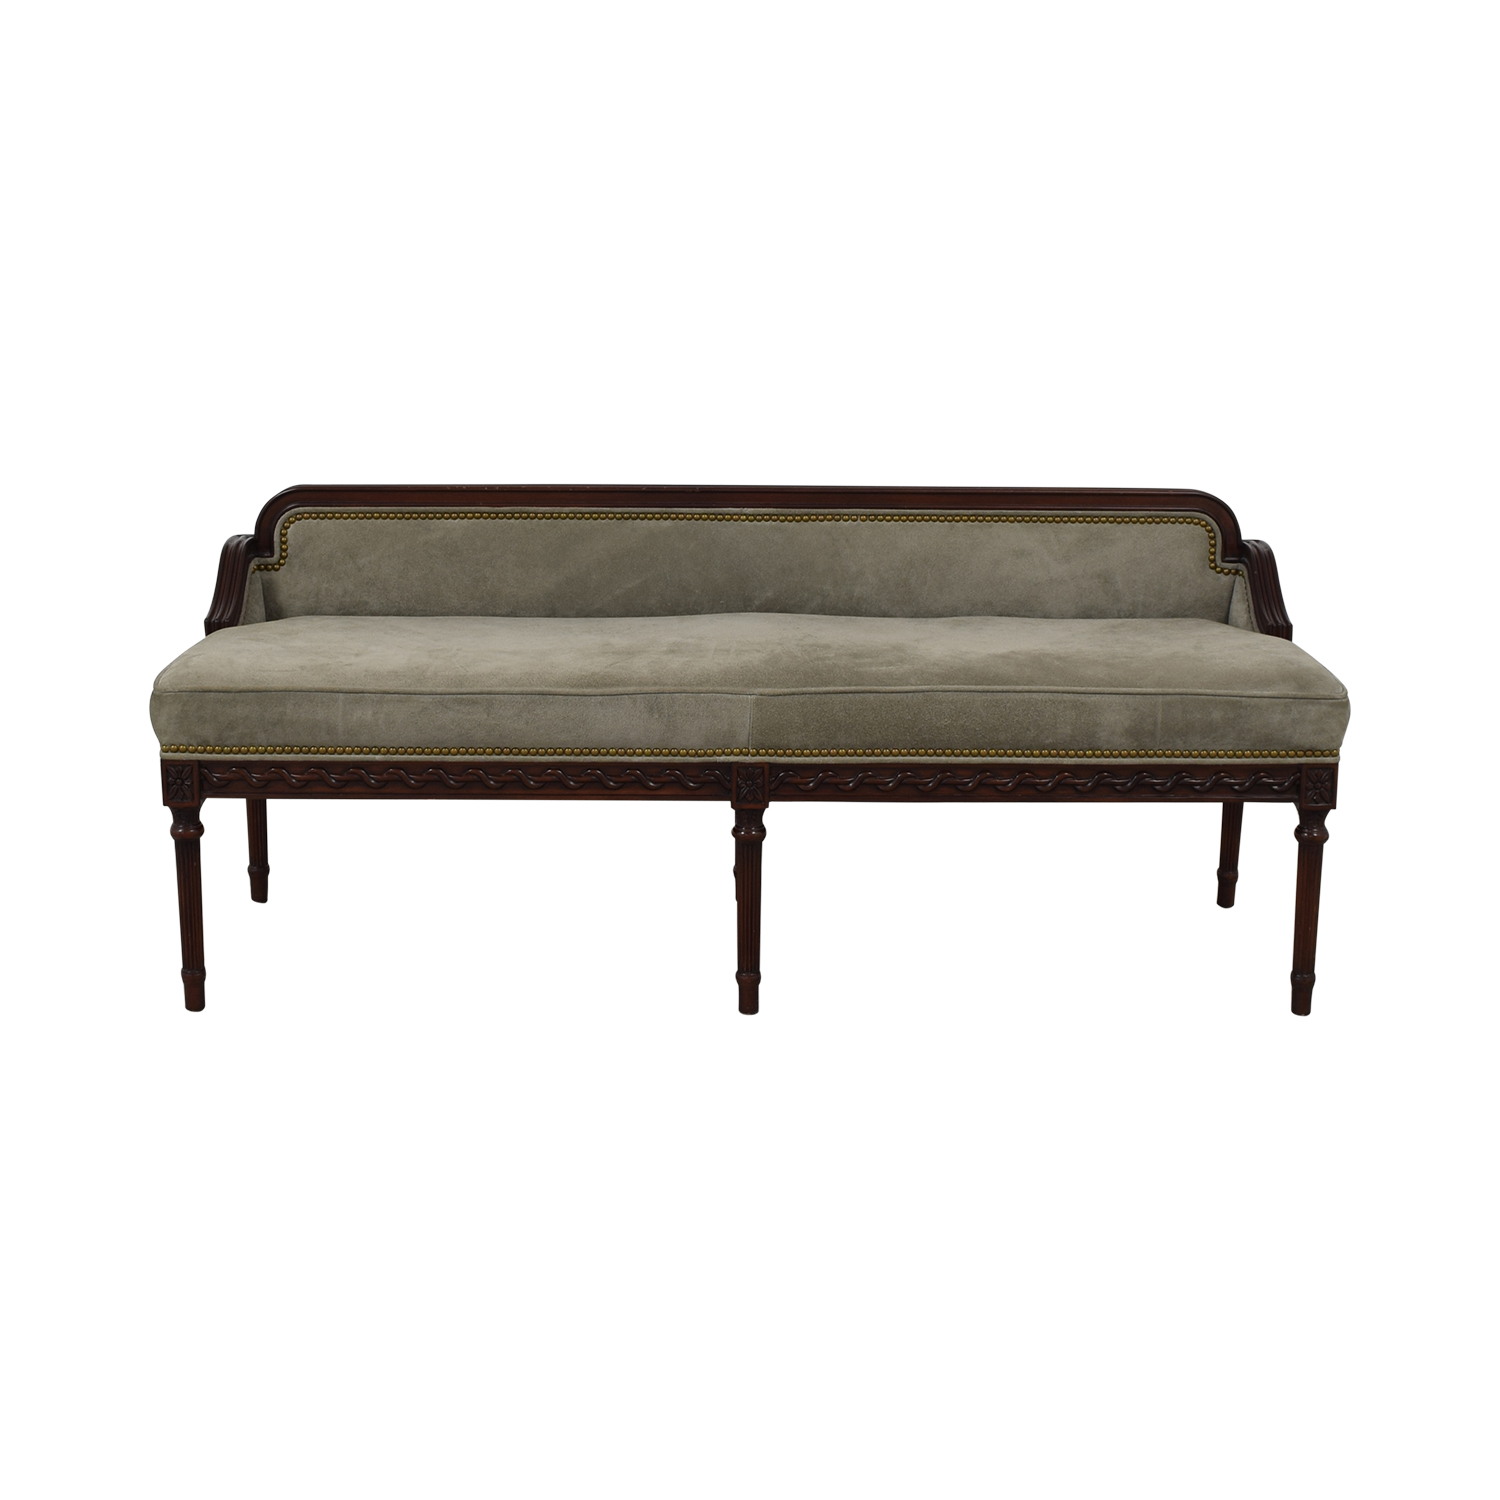 80% OFF   Hancock And Moore Hancock And Moore Leather Drake Bench / Chairs